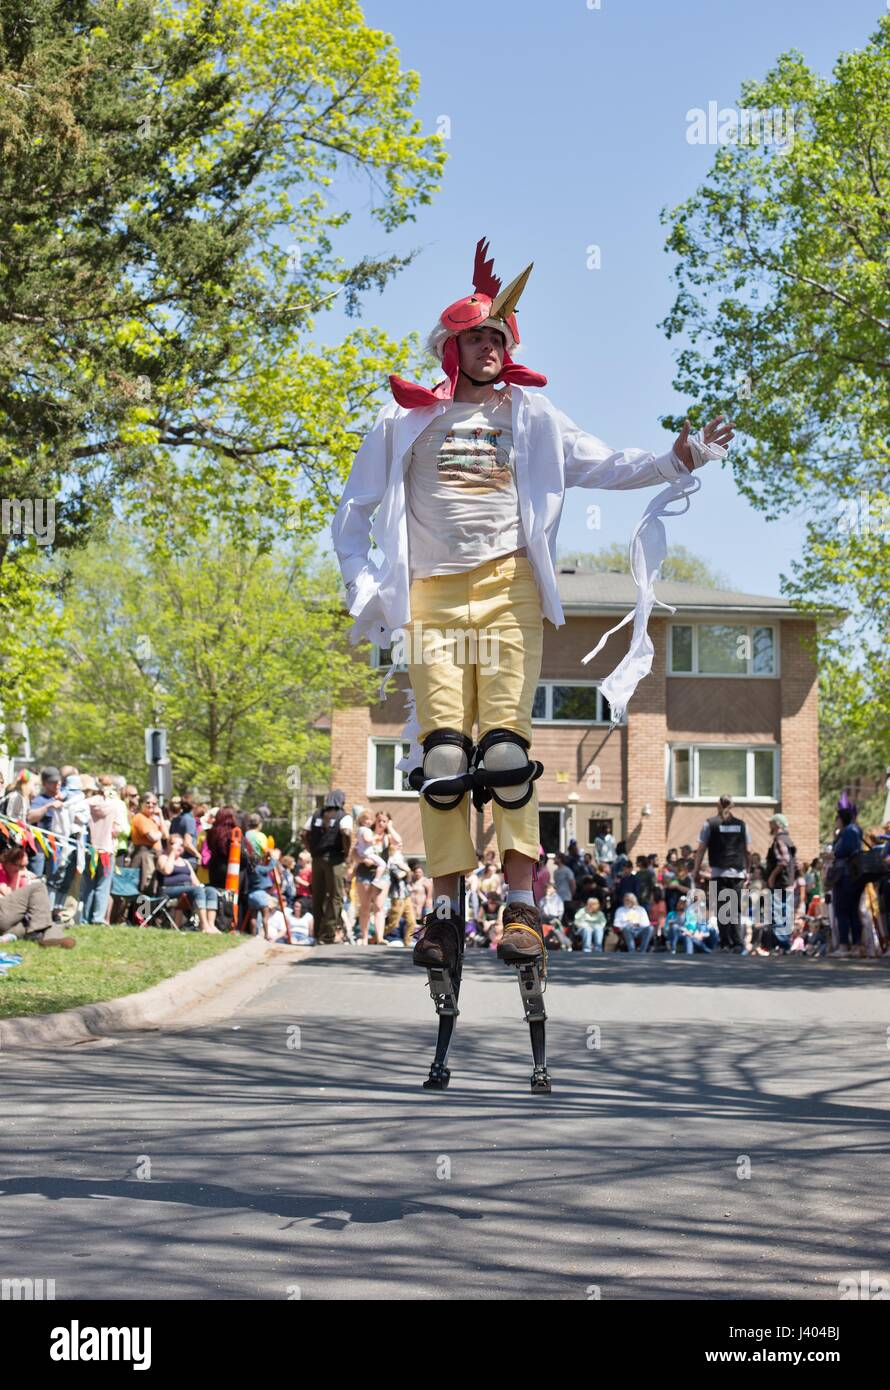 A man bouncing with spring shoes at the Mayday parade in Minneapolis, Minnesota, USA. - Stock Image